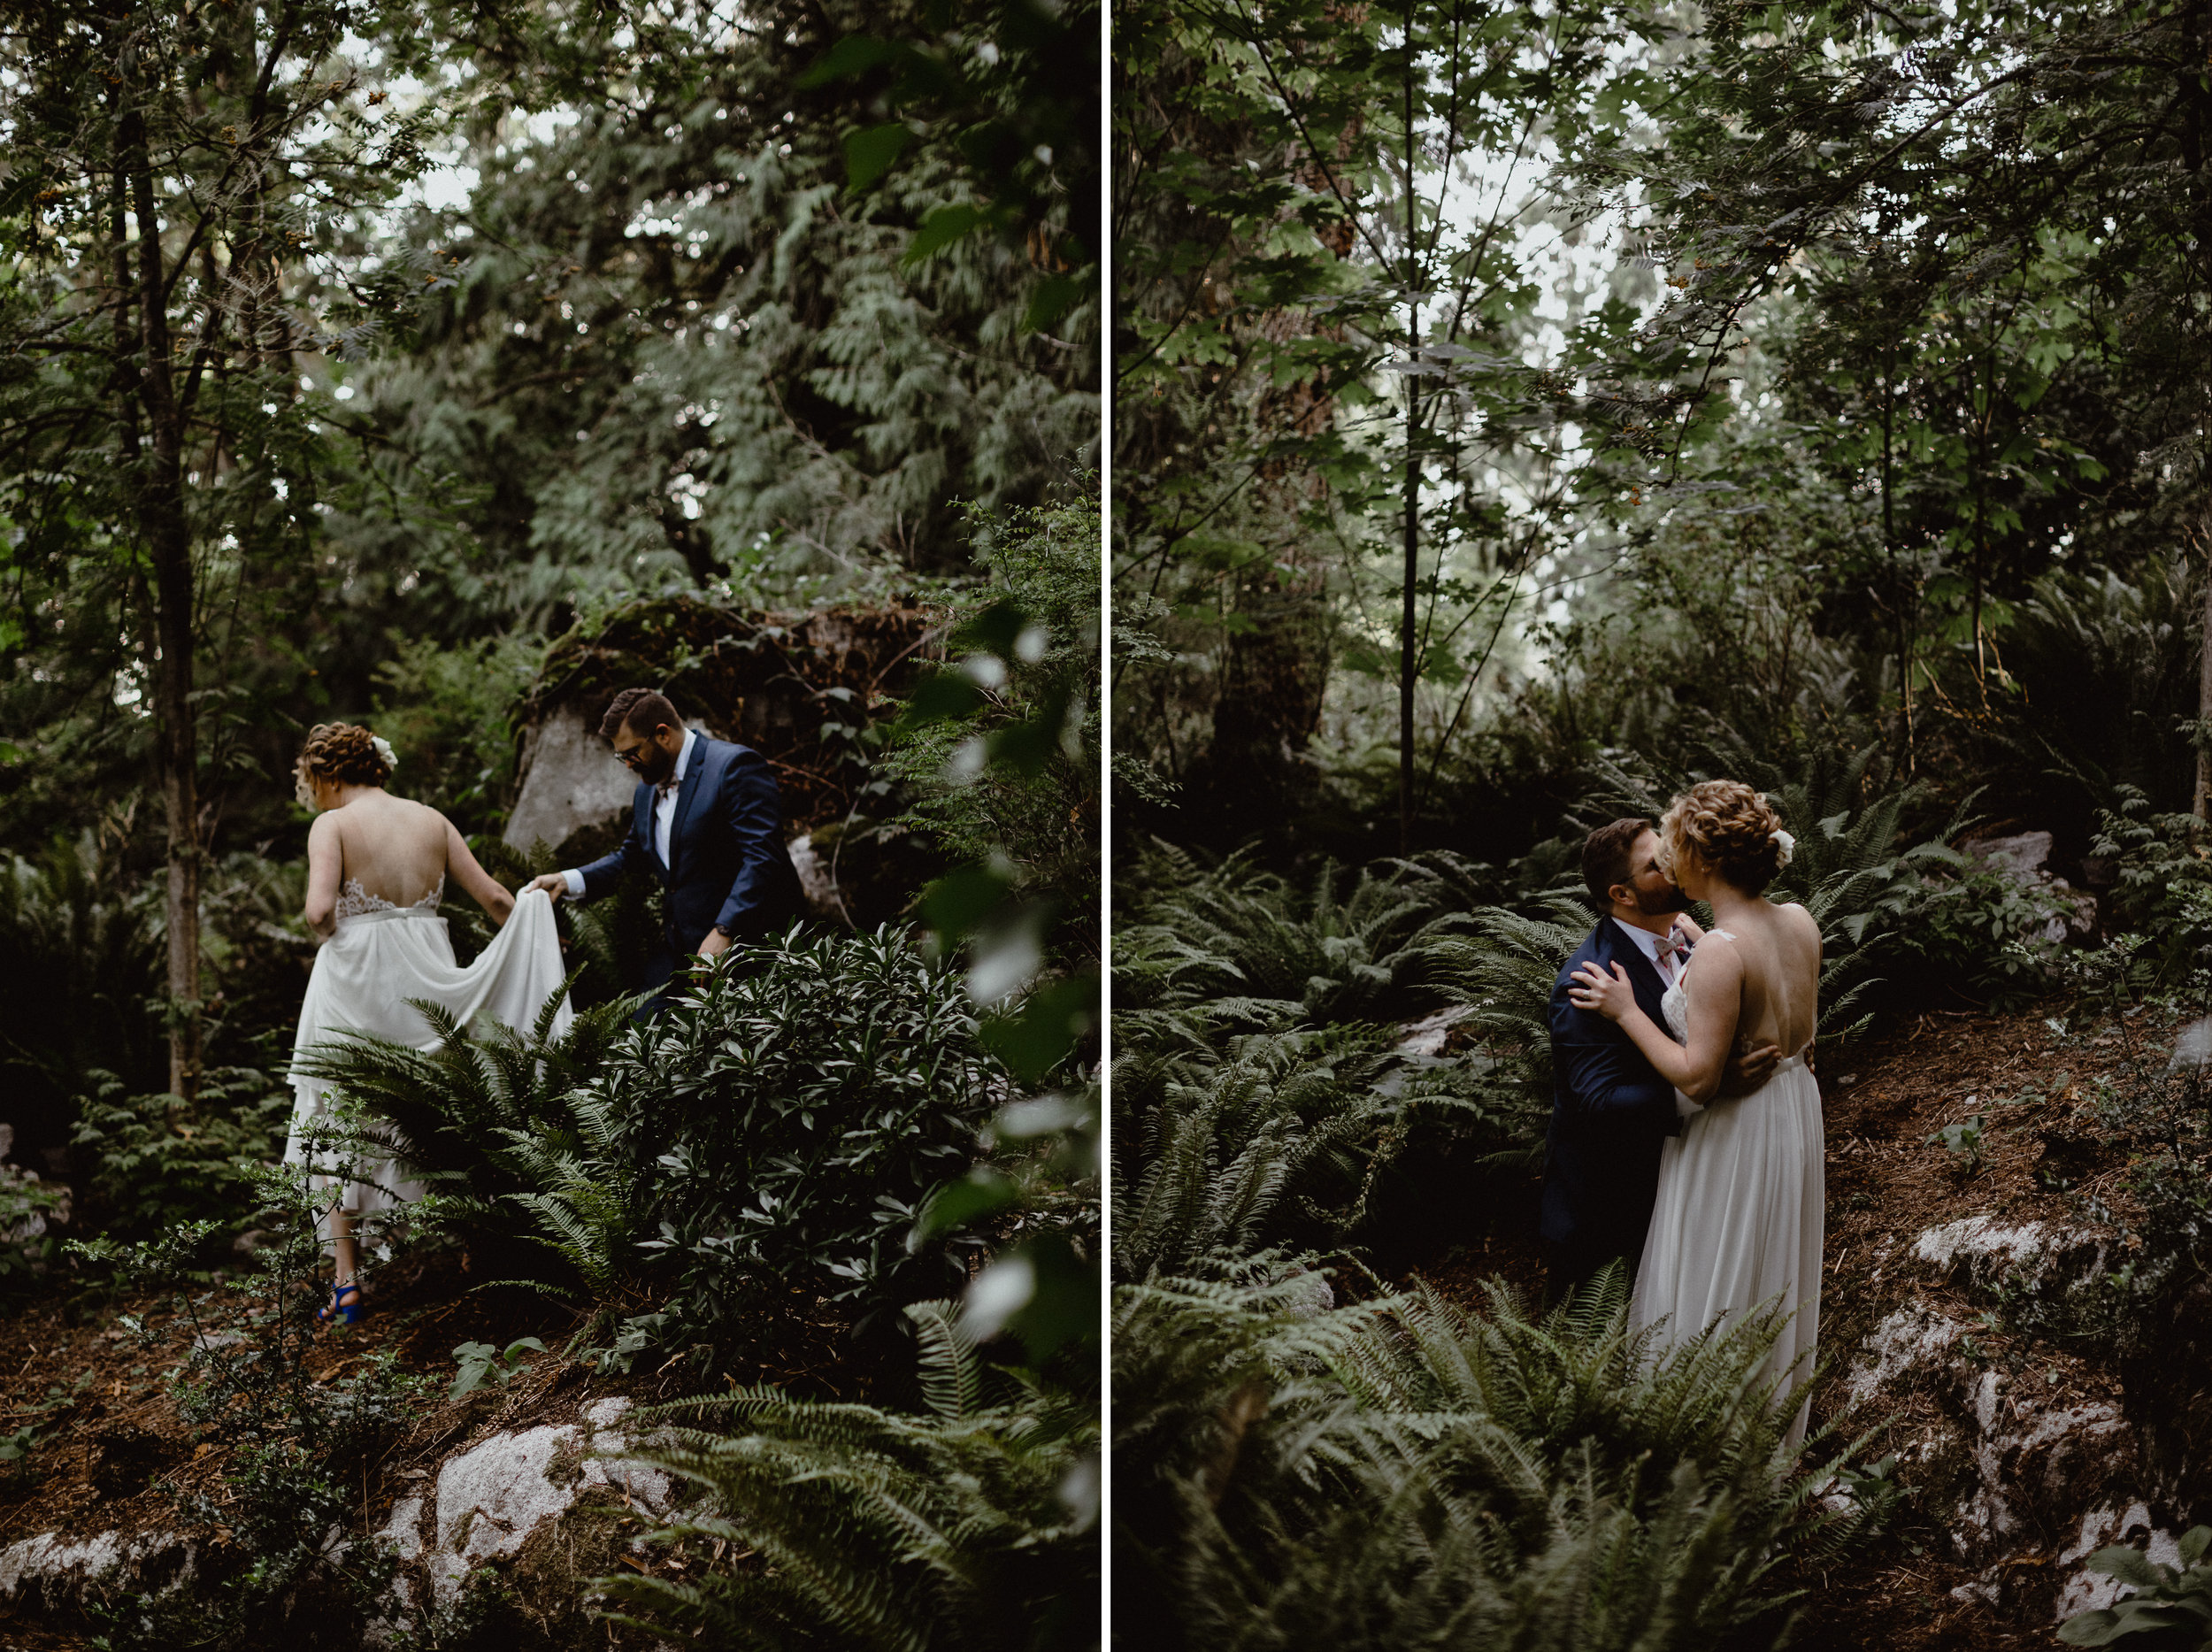 An intimate wedding photo at a forest in West Vancouver